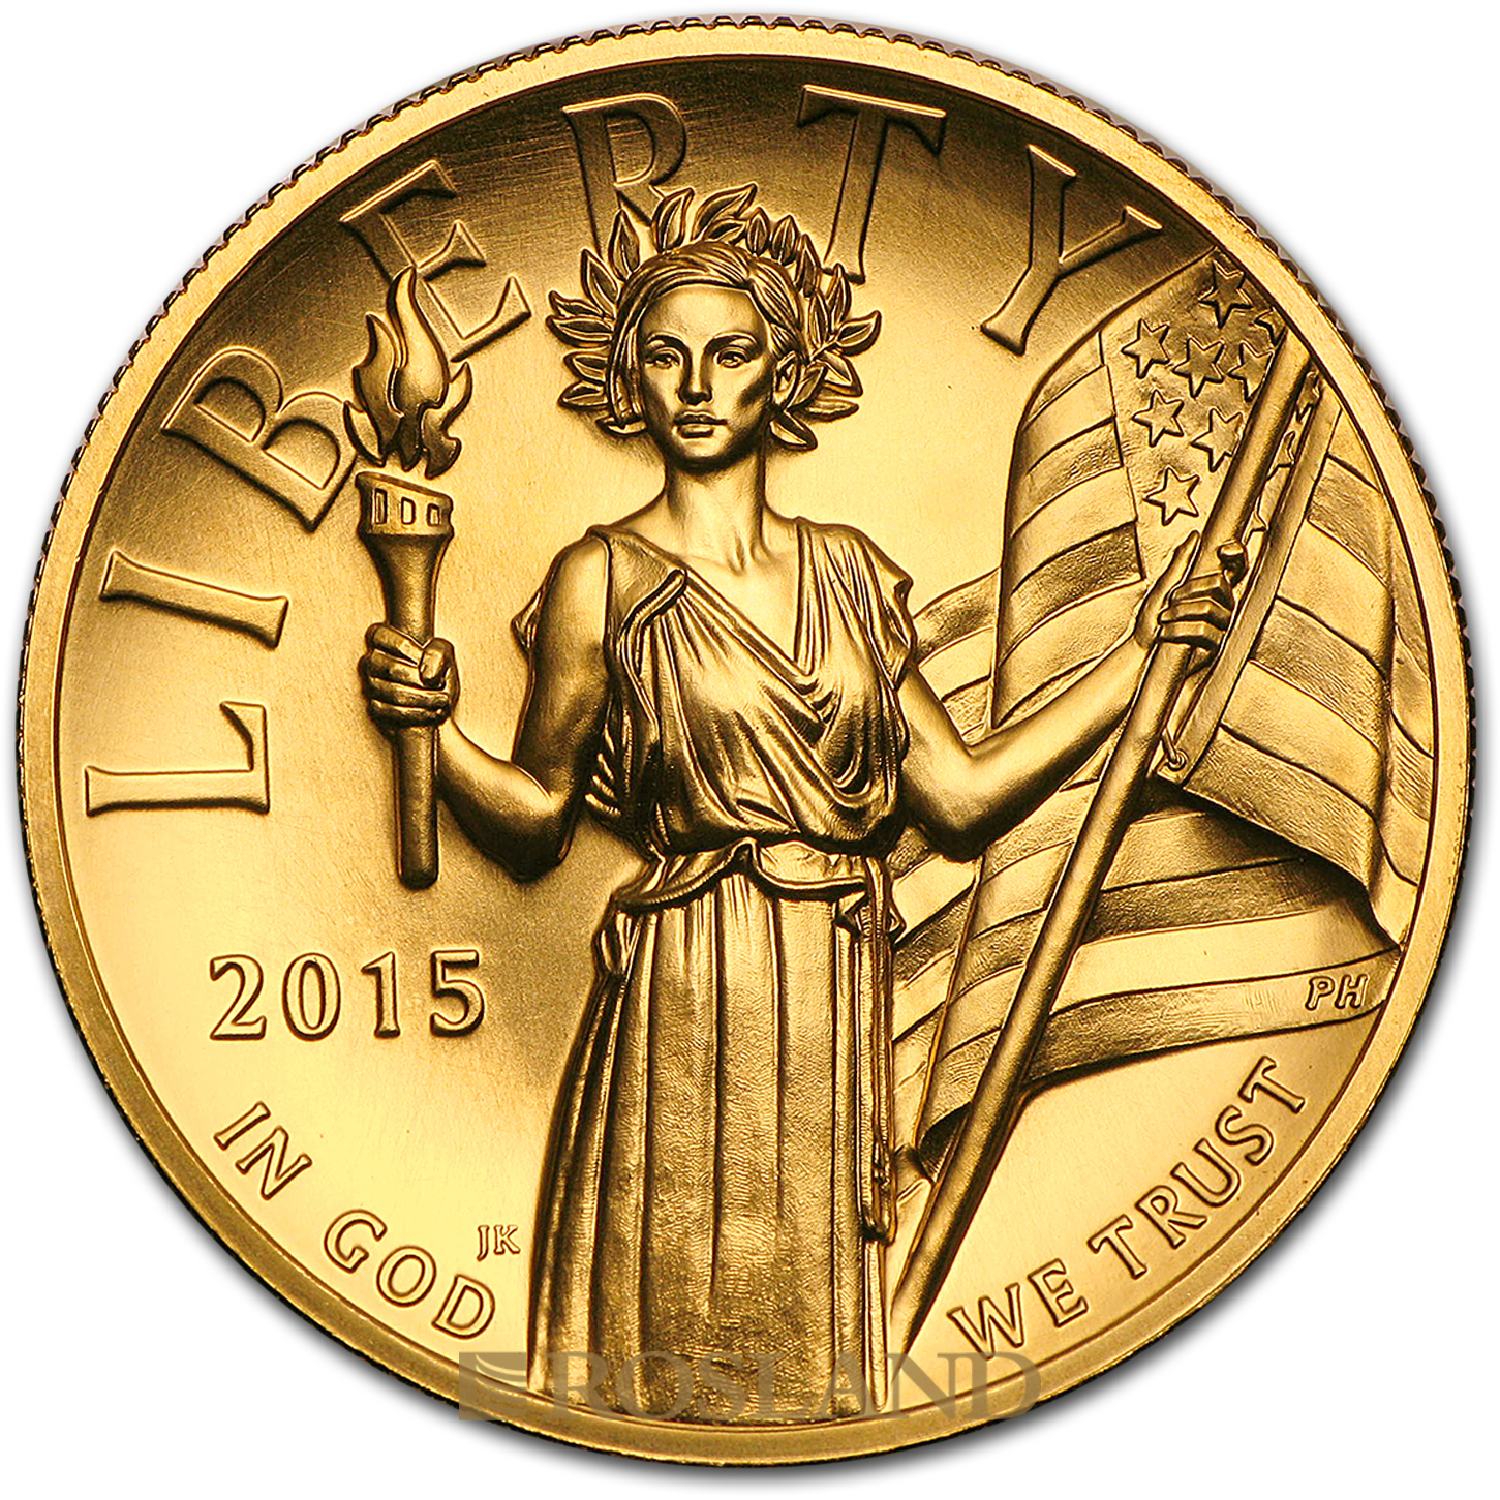 1 Unze Goldmünze American Liberty 2015 PL (HR, Box, Zertifikat)